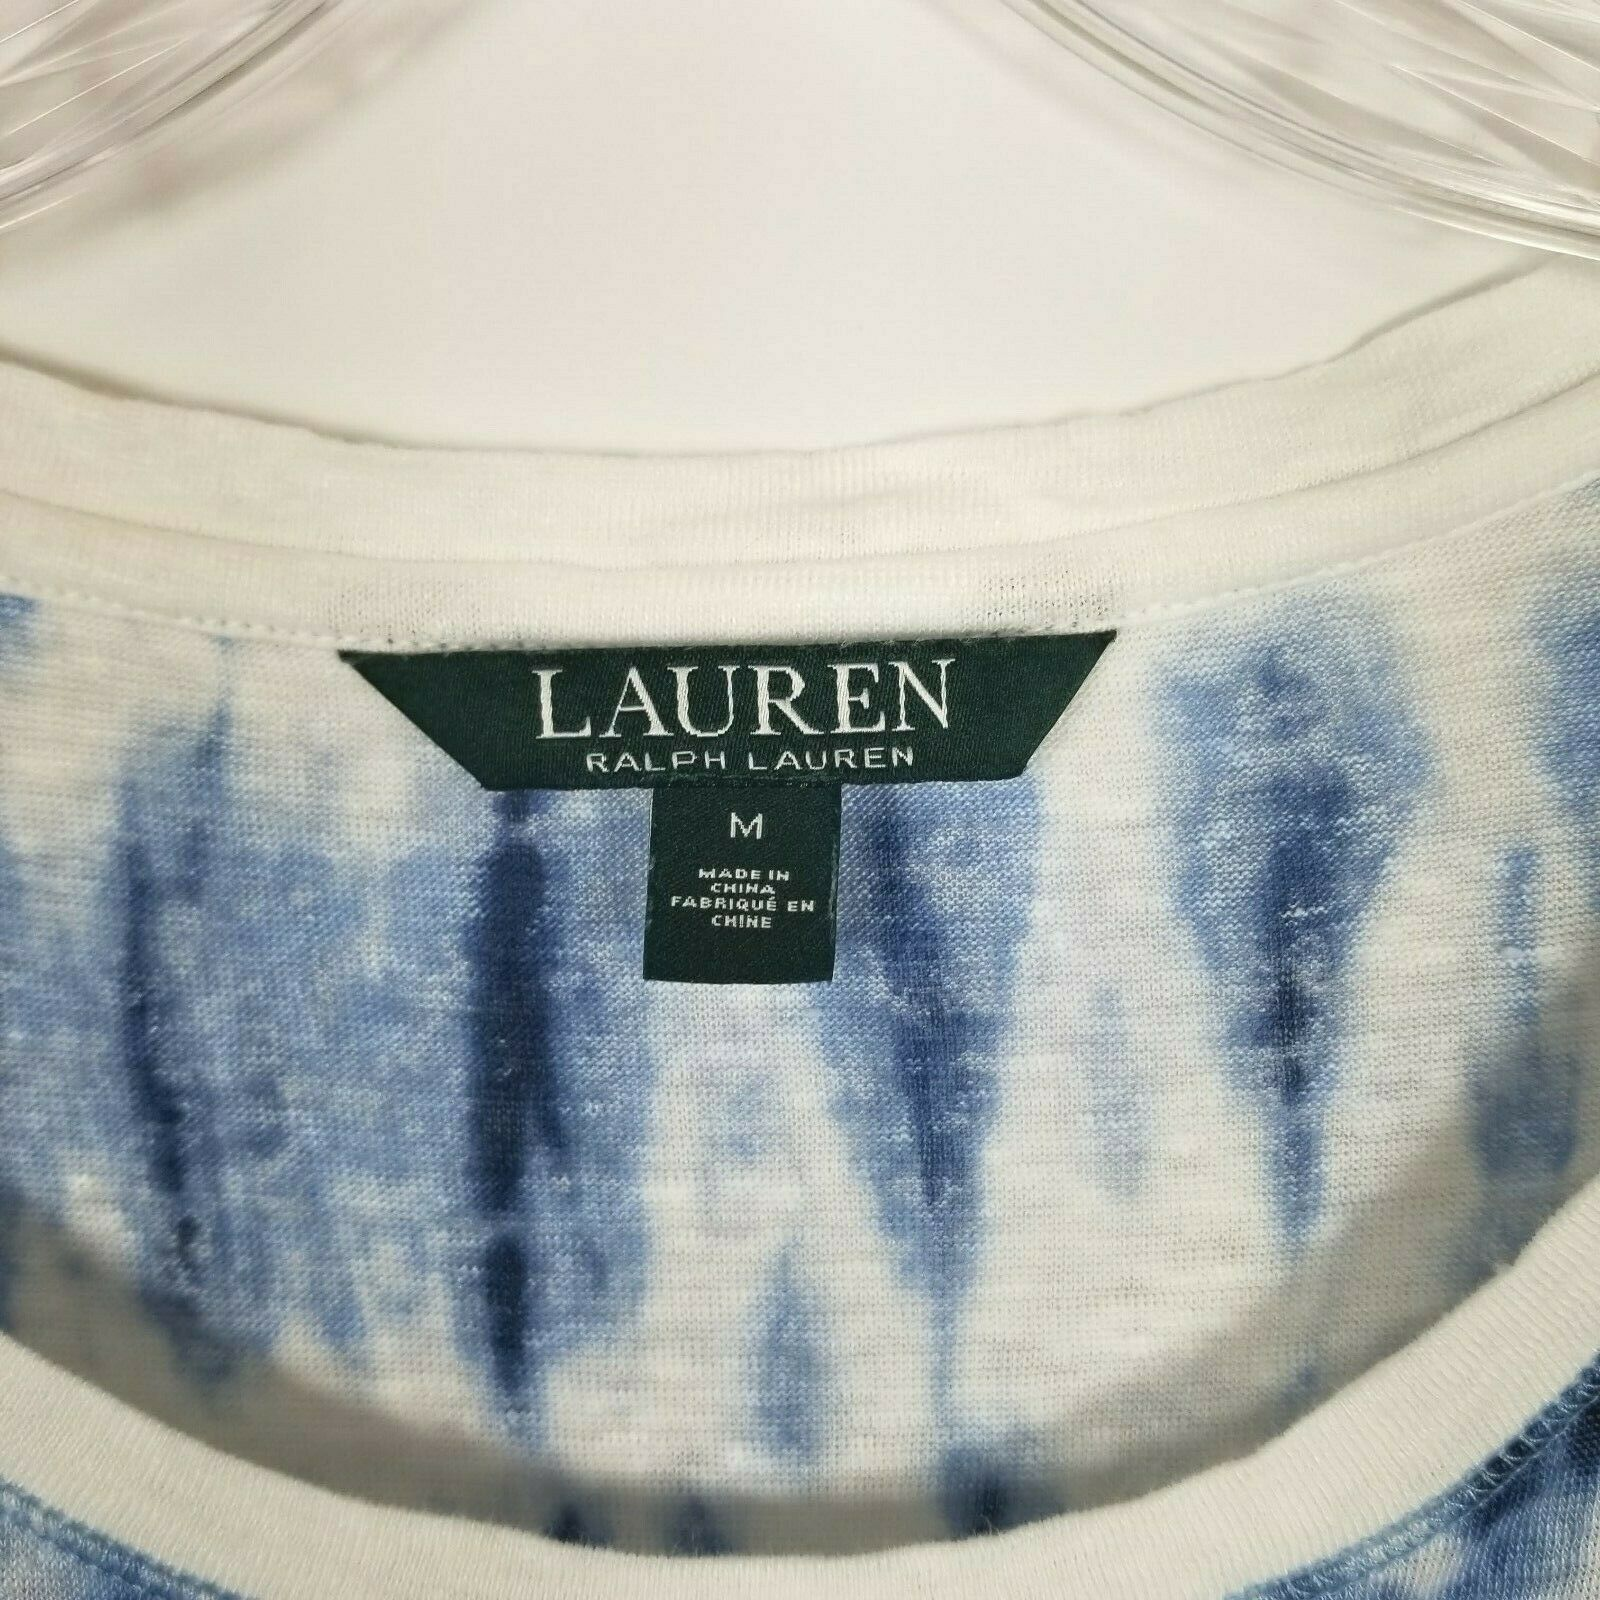 Lauren Ralph Lauren Womens Top Linen Blue White Tie Dye Linen Size Medium